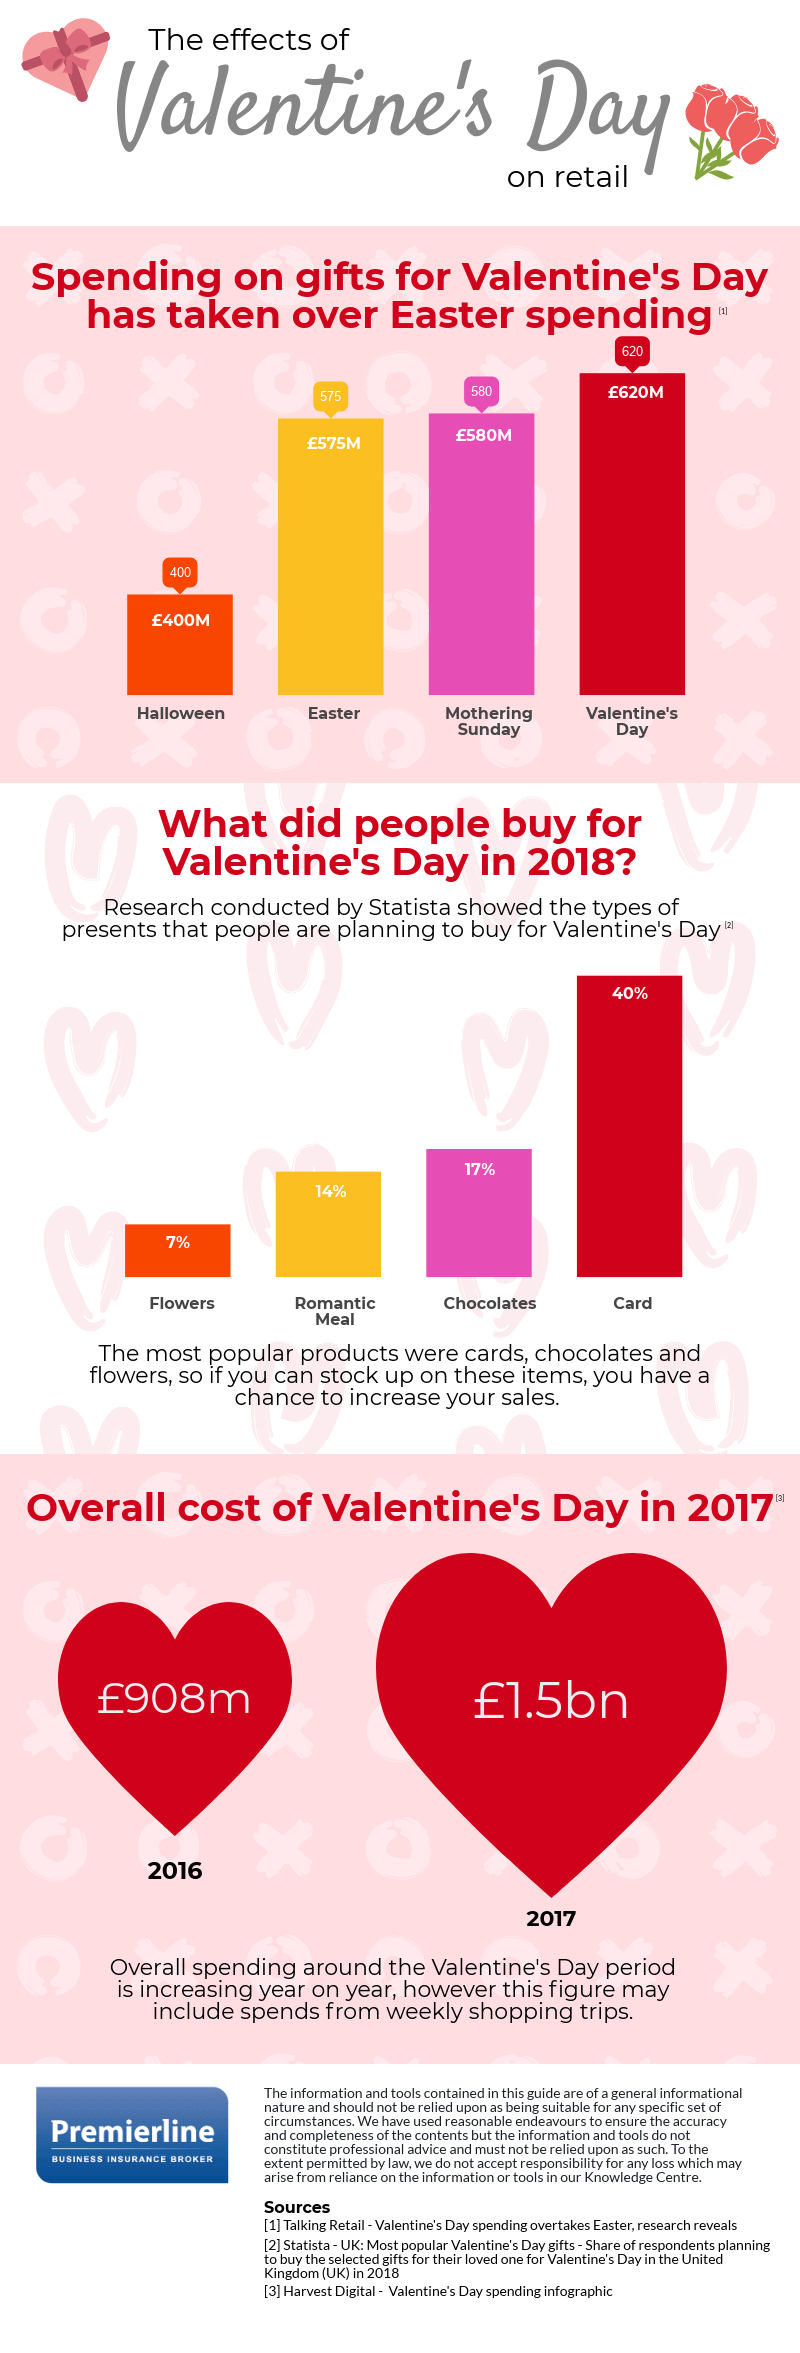 The effect of Valentine's Day on retail spending